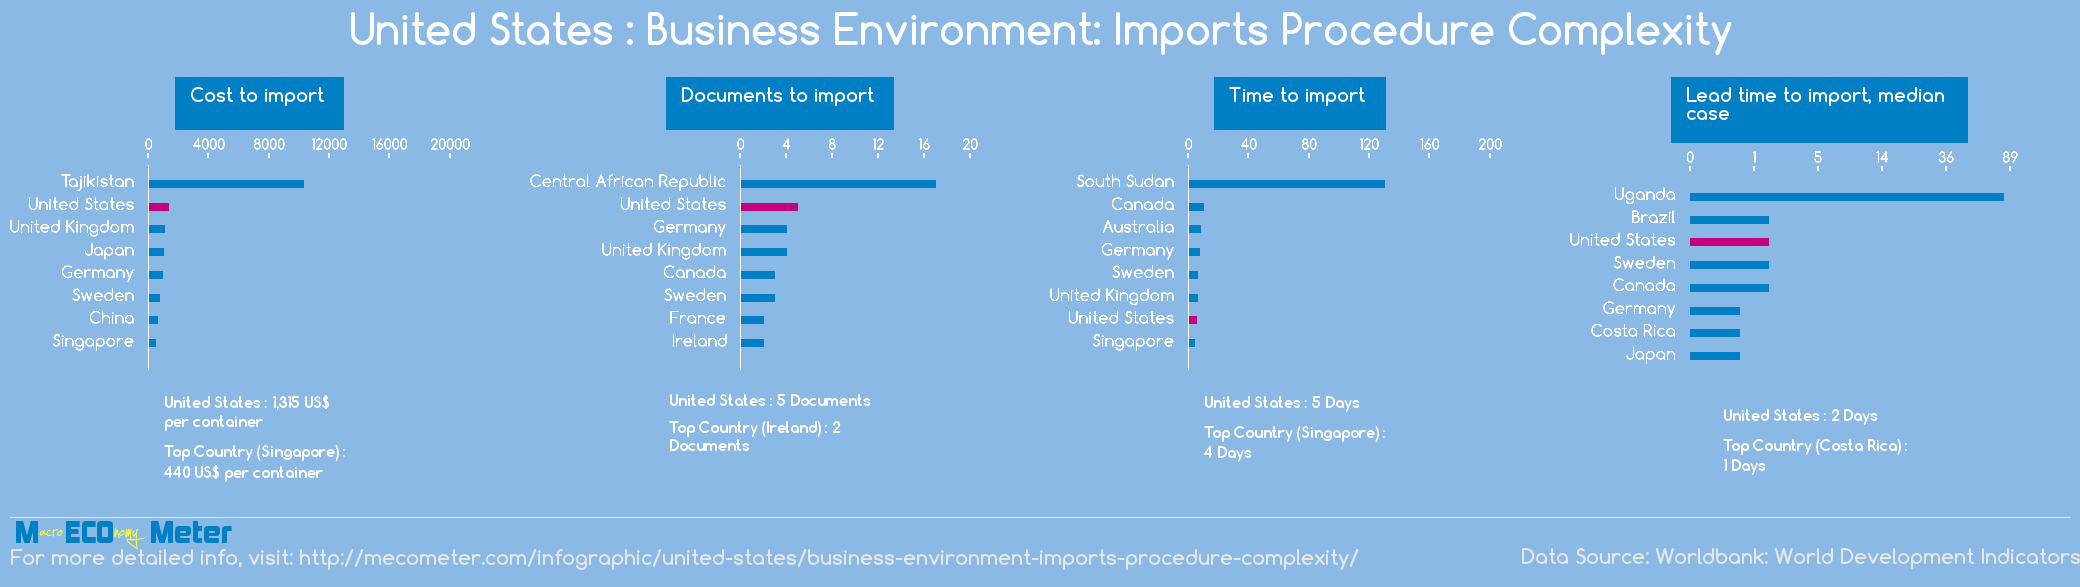 United States : Business Environment: Imports Procedure Complexity